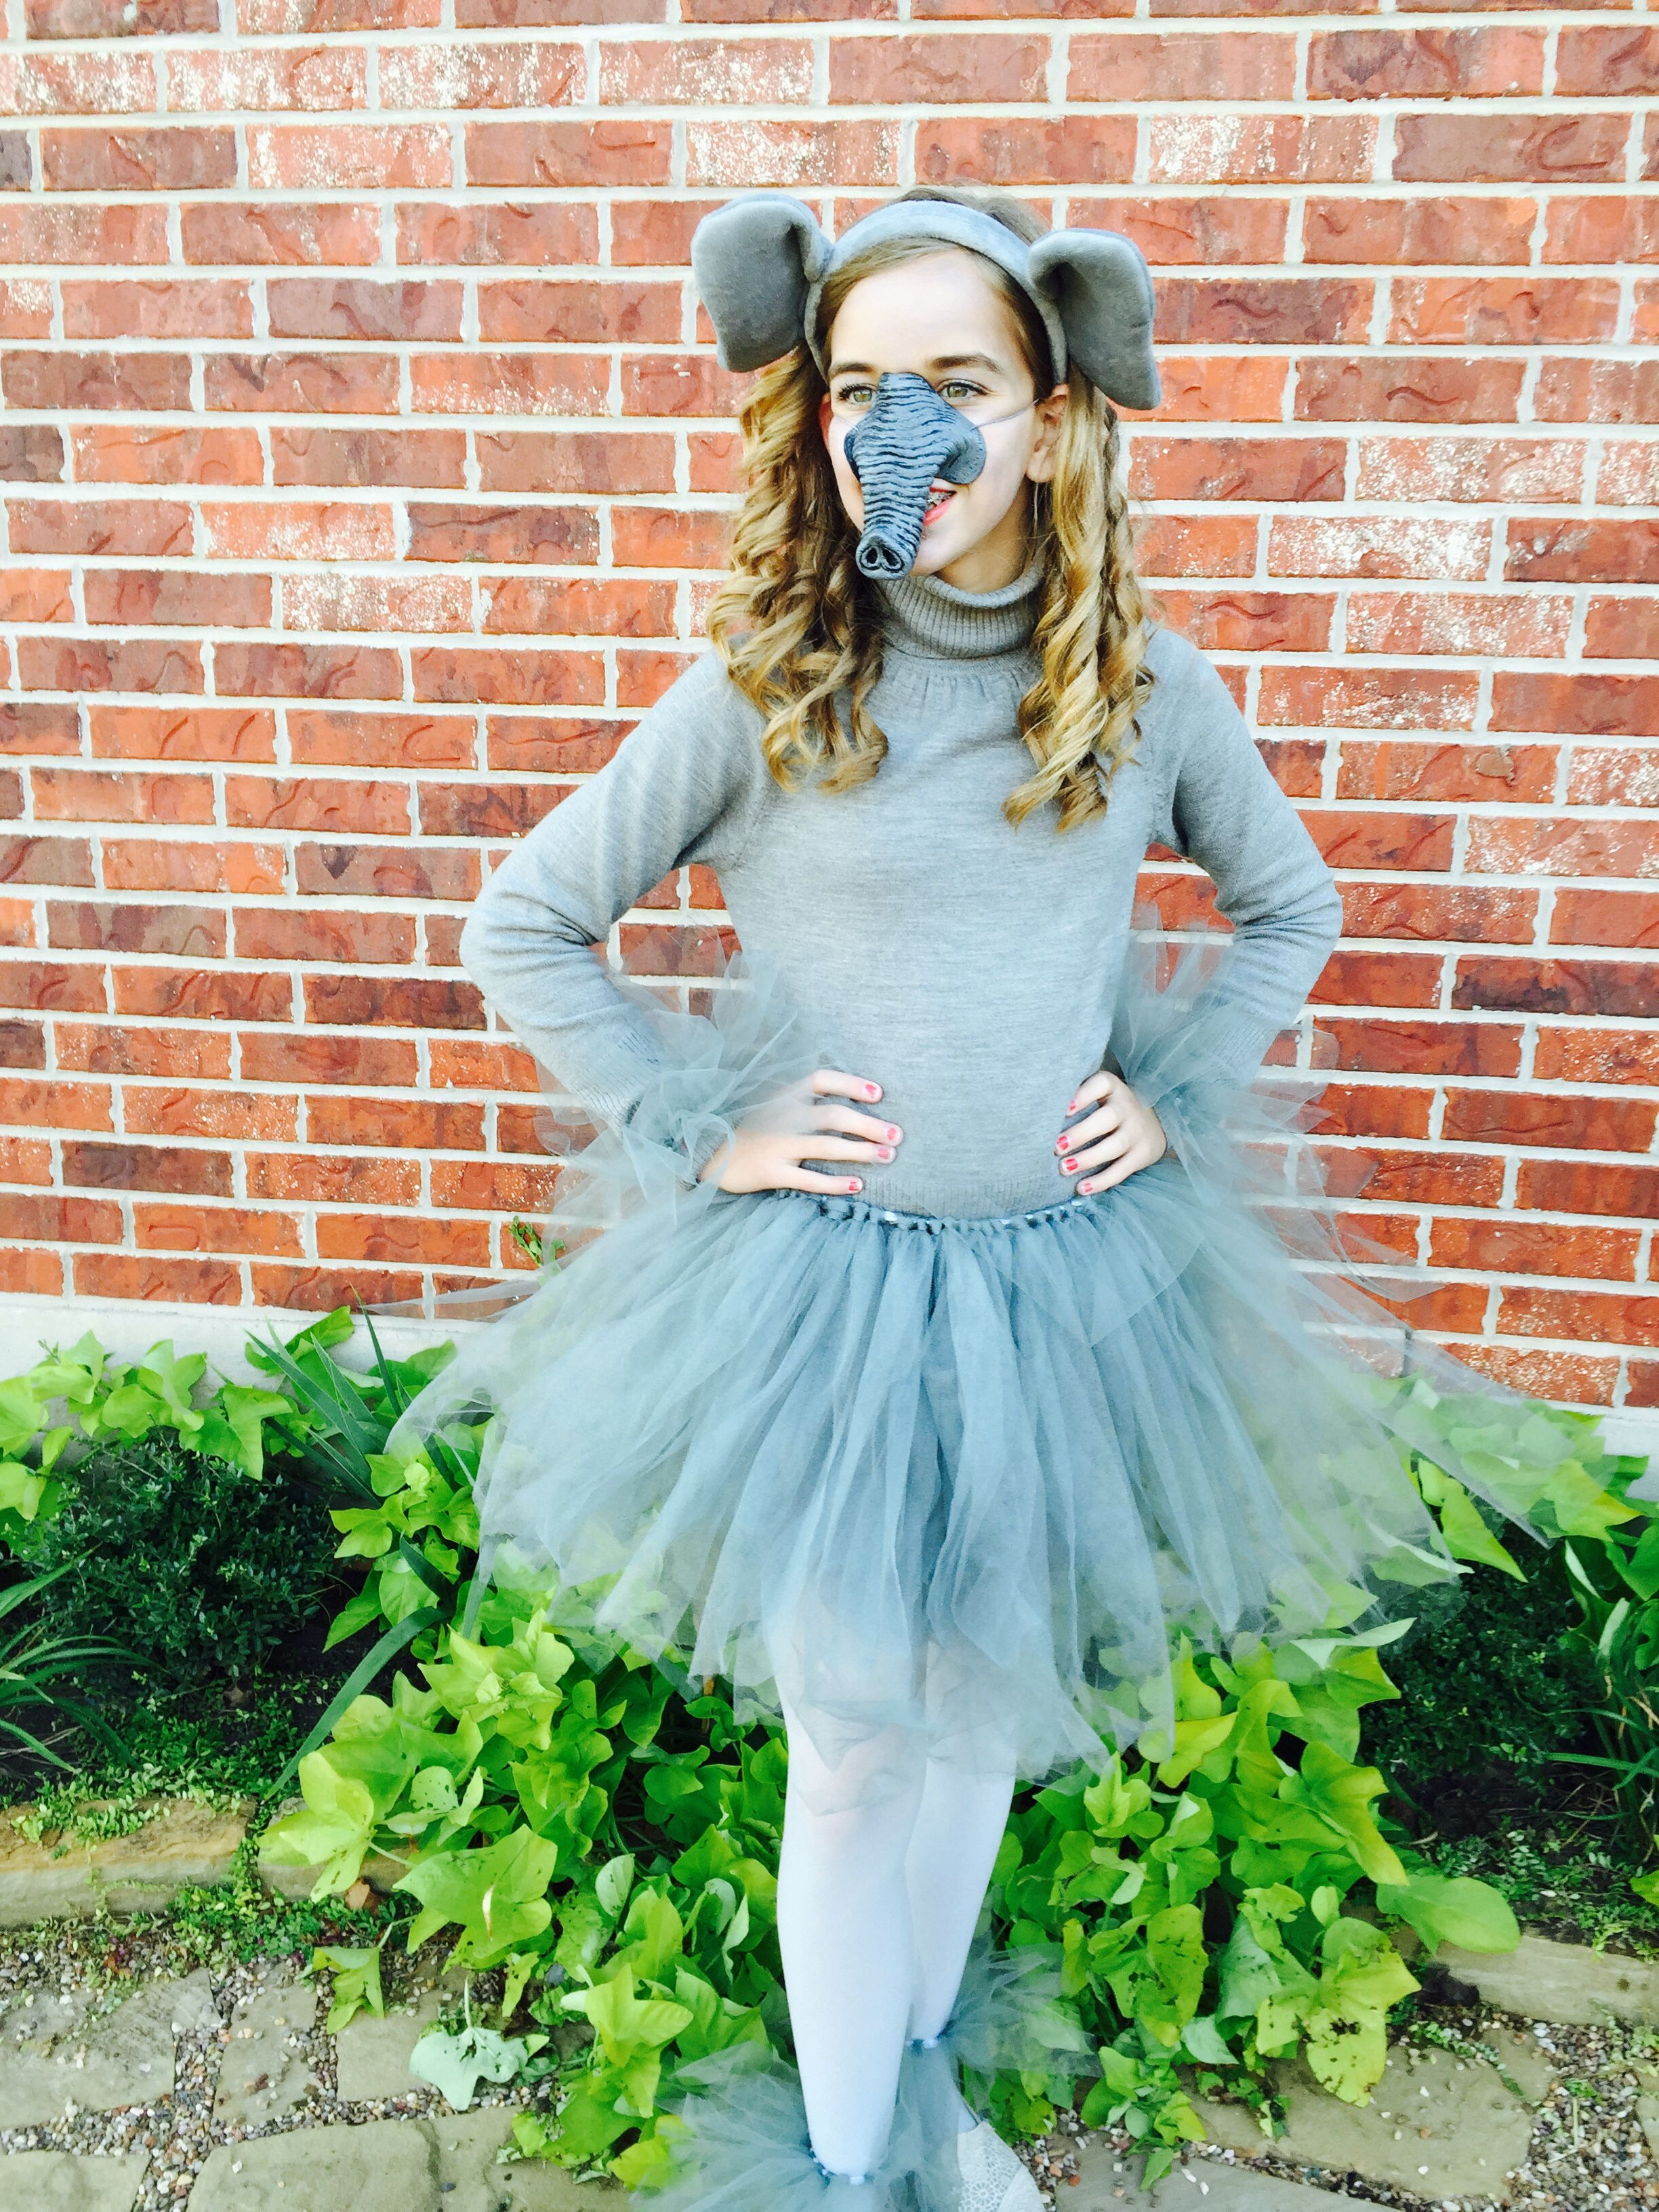 Cutest elephant costume yet!!! Diy tutu on youtube and order the ears on amazon. Next buy the nose at a Halloween store and some leggings at walmart! & Cutest elephant costume yet!!! Diy tutu on youtube and order the ...